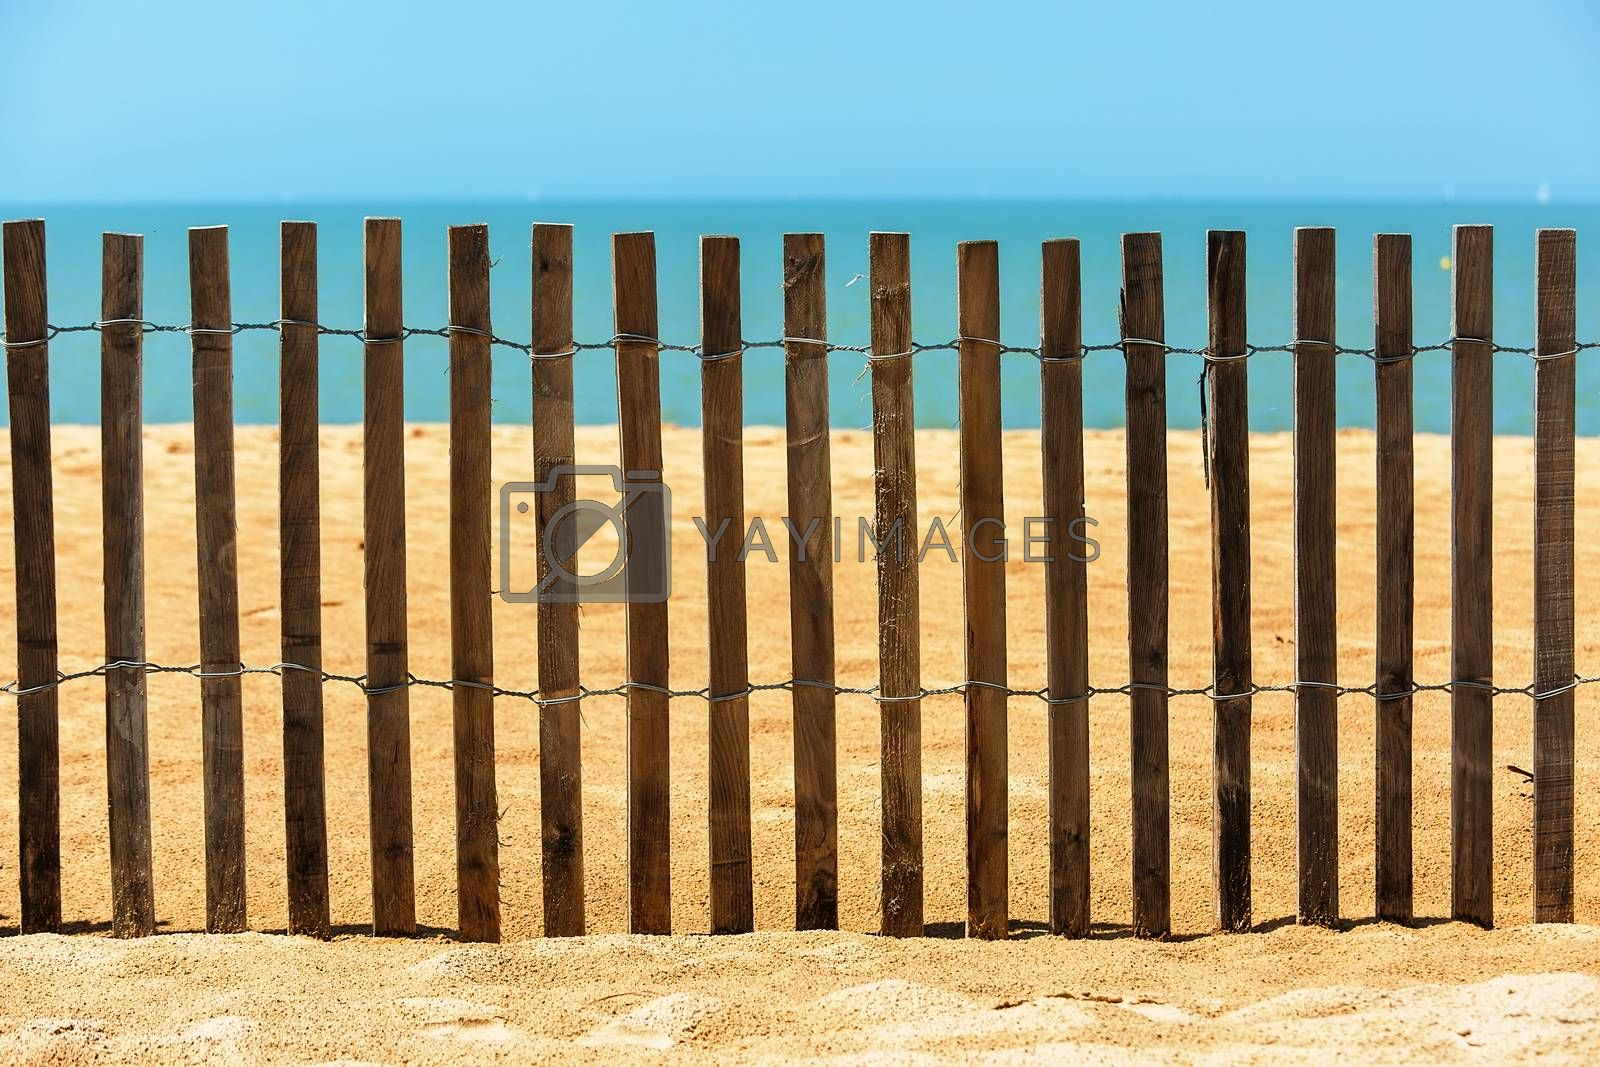 Royalty free image of Palisades on sand beach near ocean. Private beach concept by pixinoo